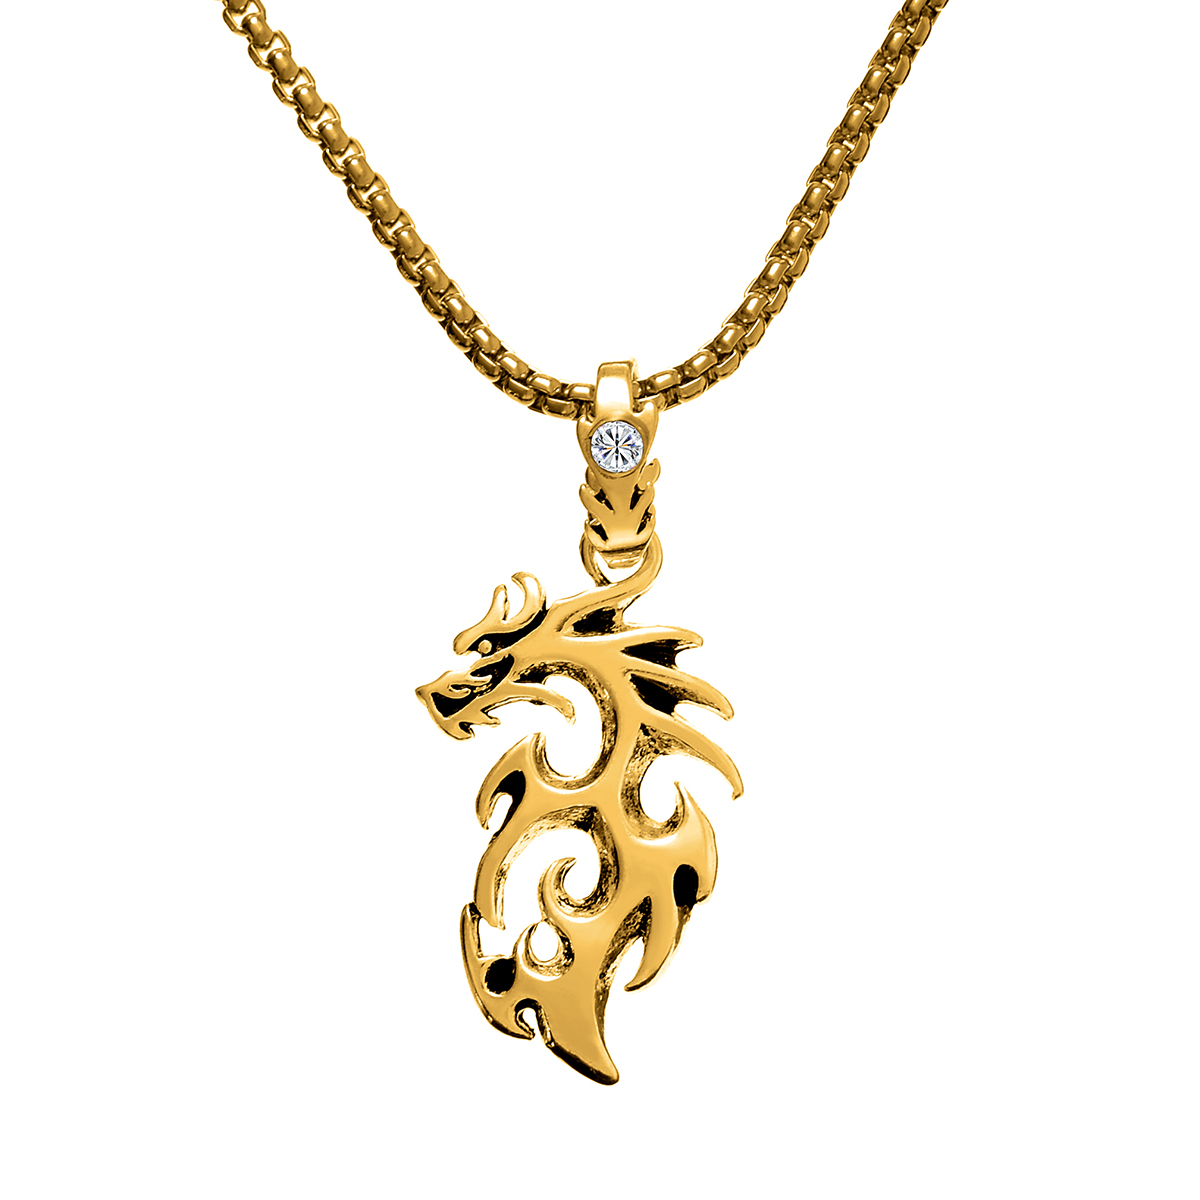 Punk Dragon Pendant Necklace Shellhad Antique Silver Gold Color Long Chain Neckleace For Men Chinese Style Lucky Jewelry Gift